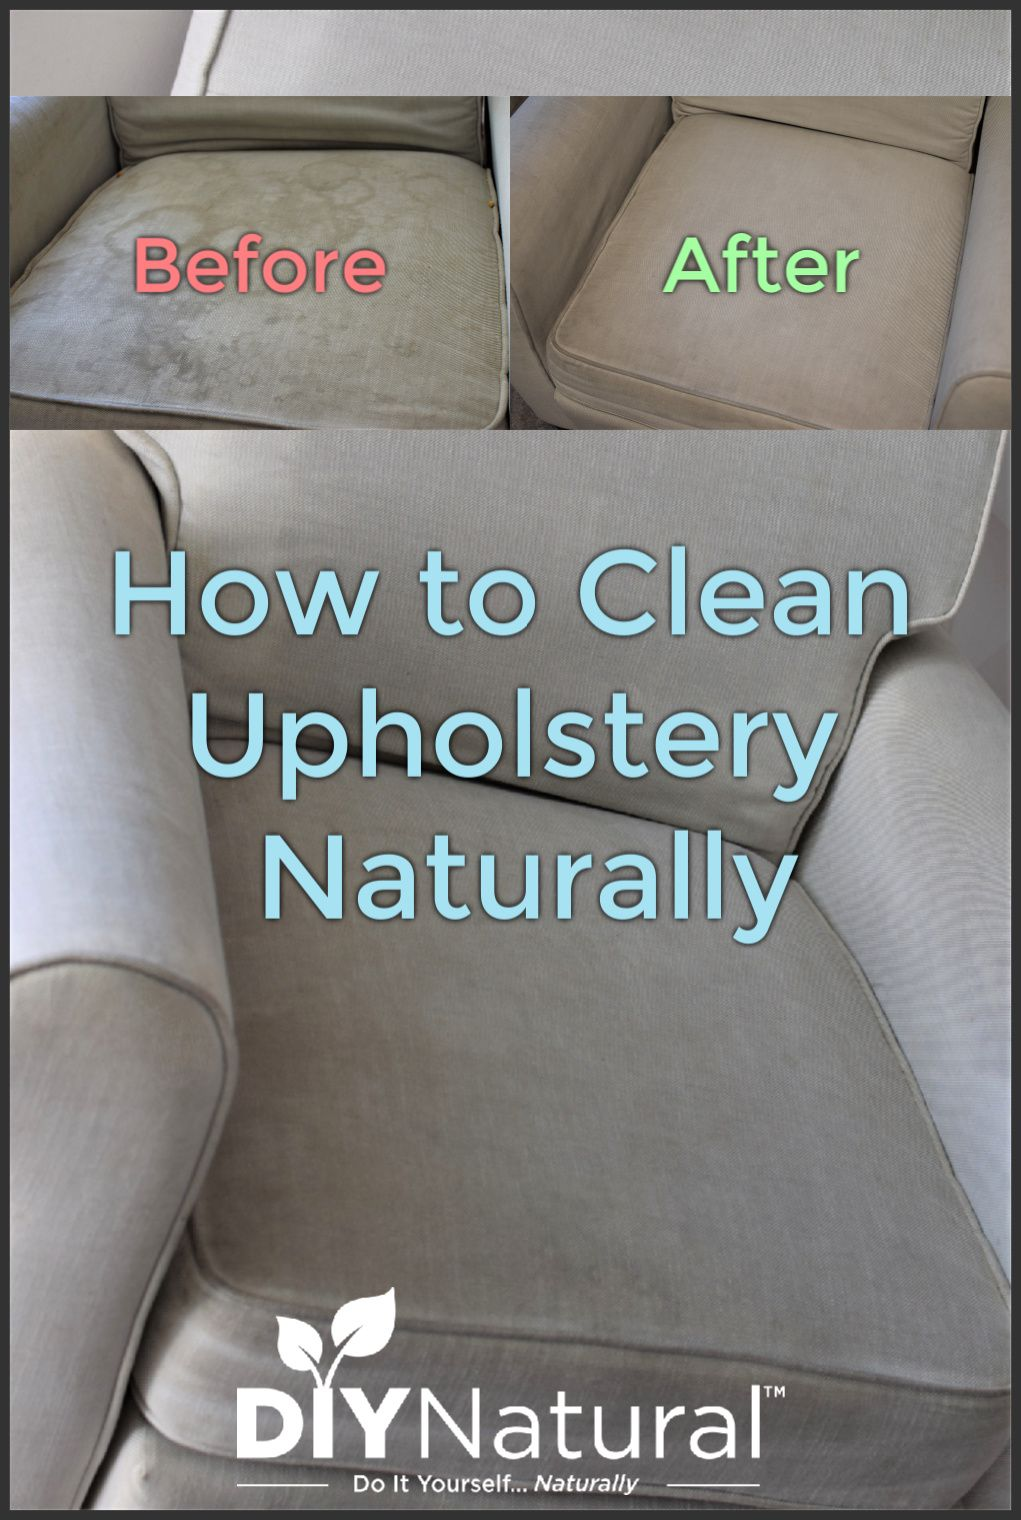 How To Clean Upholstery Naturally And A DIY Upholstery